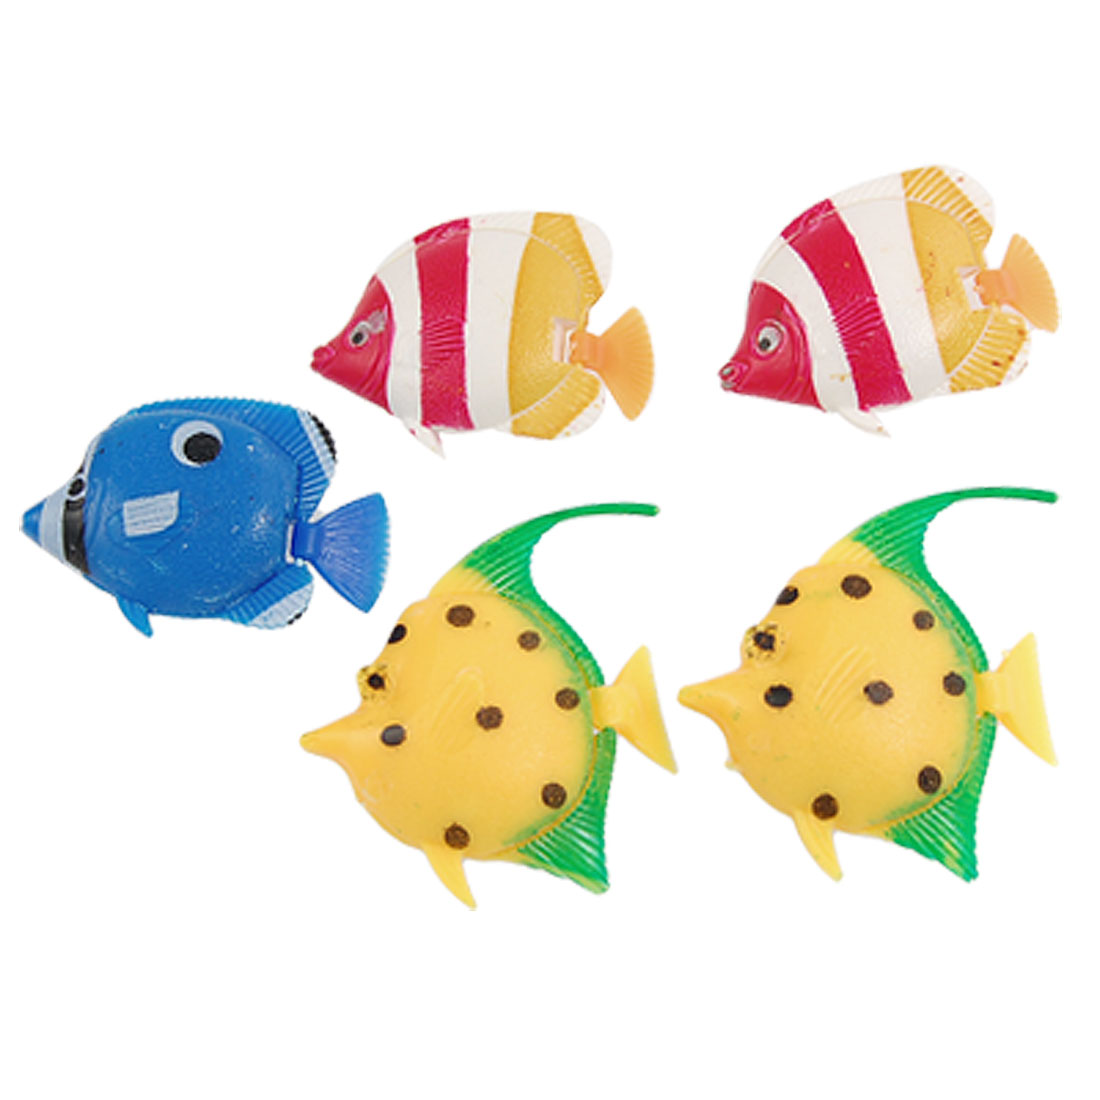 5 Pcs Wiggly Tail Colorful Plastic Floating Tropical Fish for Aquarium